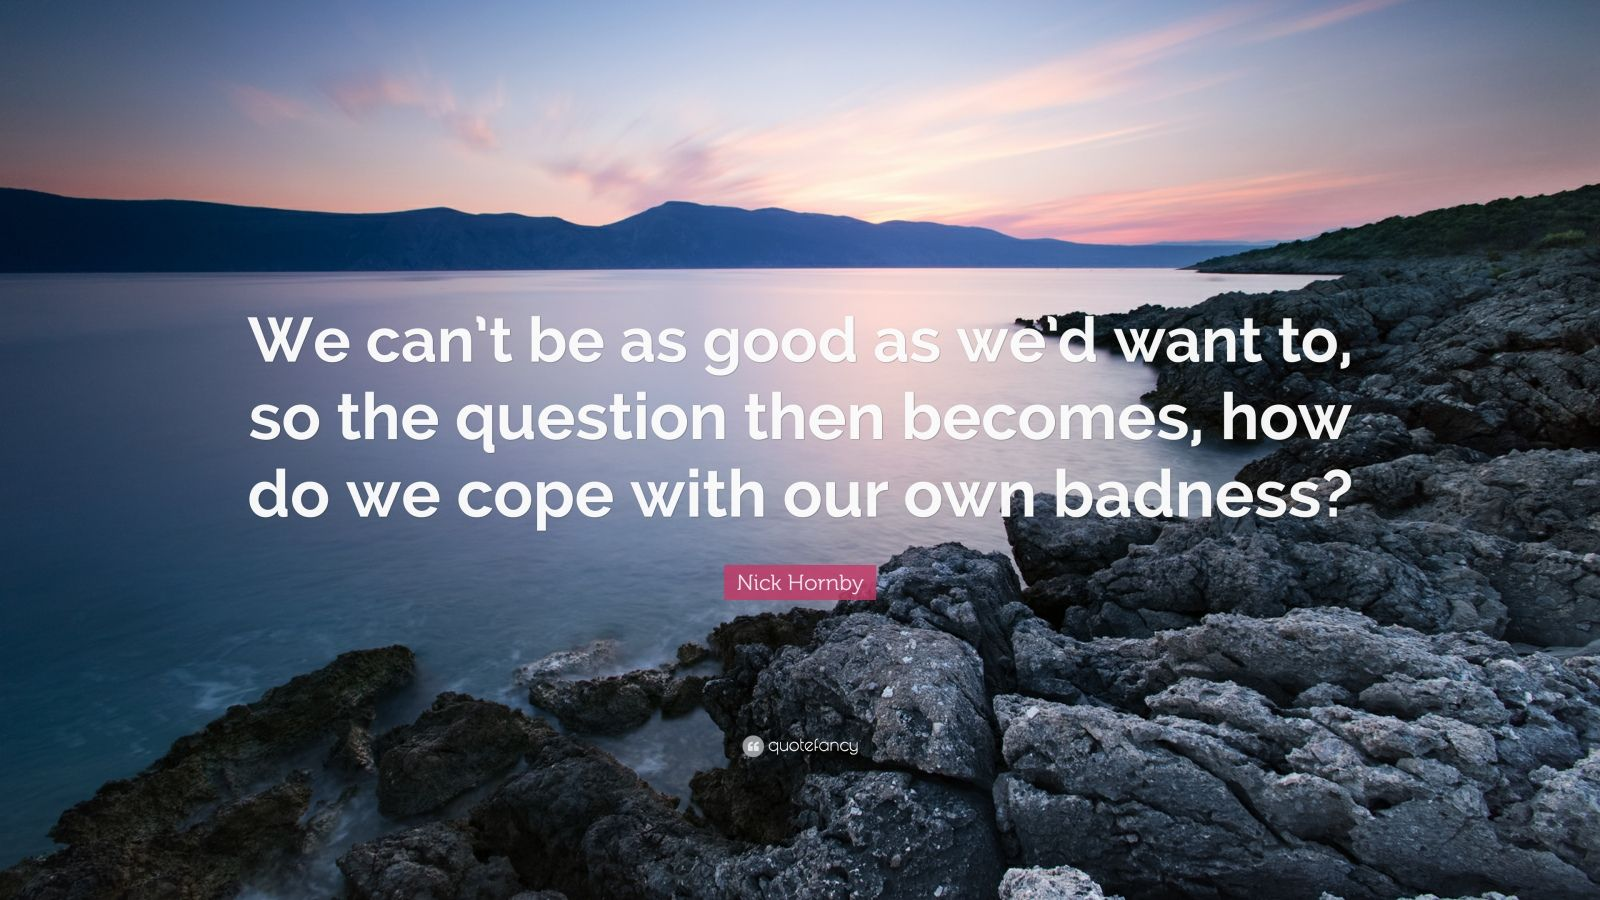 """Nick Hornby Quote: """"We can't be as good as we'd want to, so the question then becomes, how do we cope with our own badness?"""""""